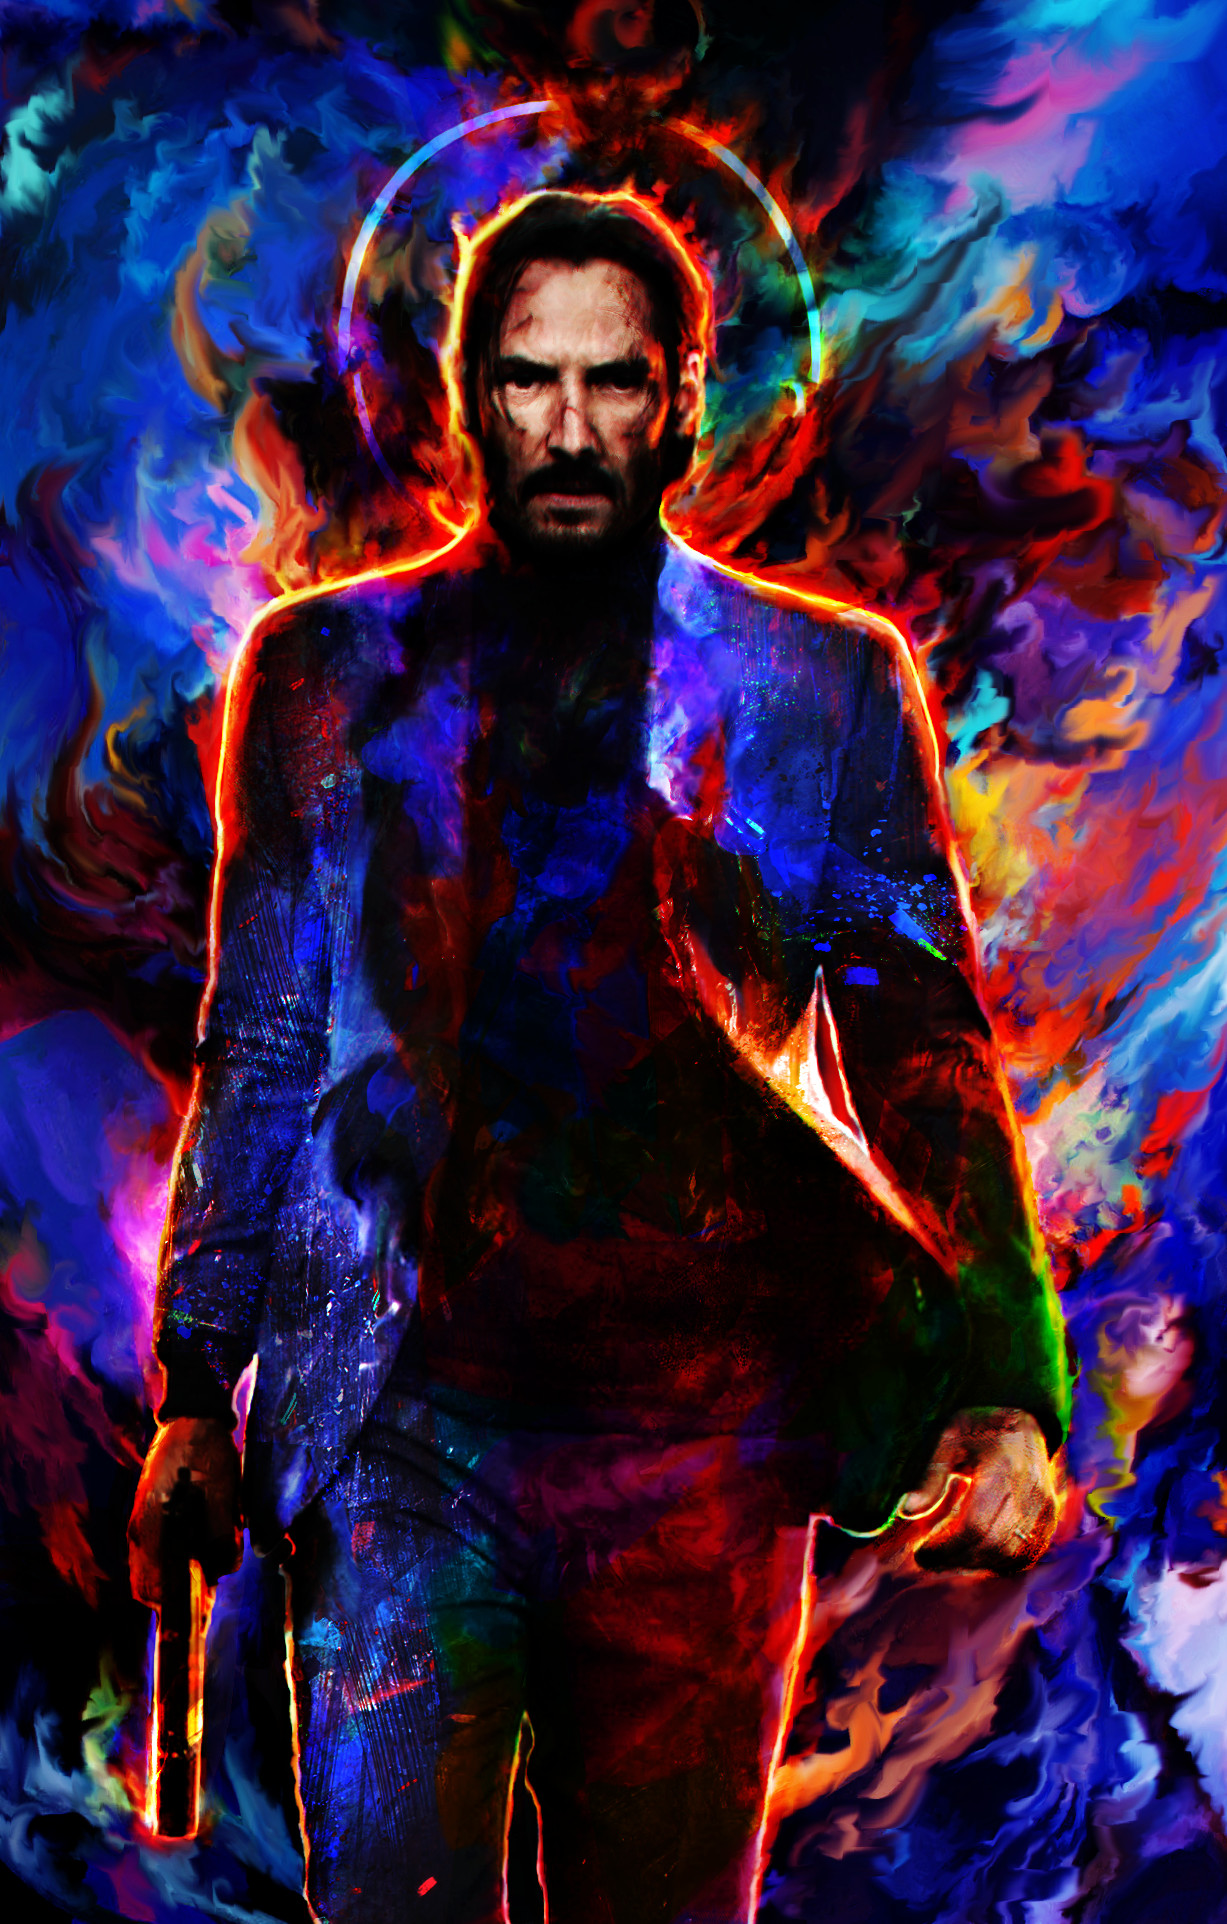 1920x1080 John Wick: Chapter 3 Officially Has A Release Date. Lionsgate  Announced That The Third Installment Of The John Wick Franchise Will Arrive  In ...